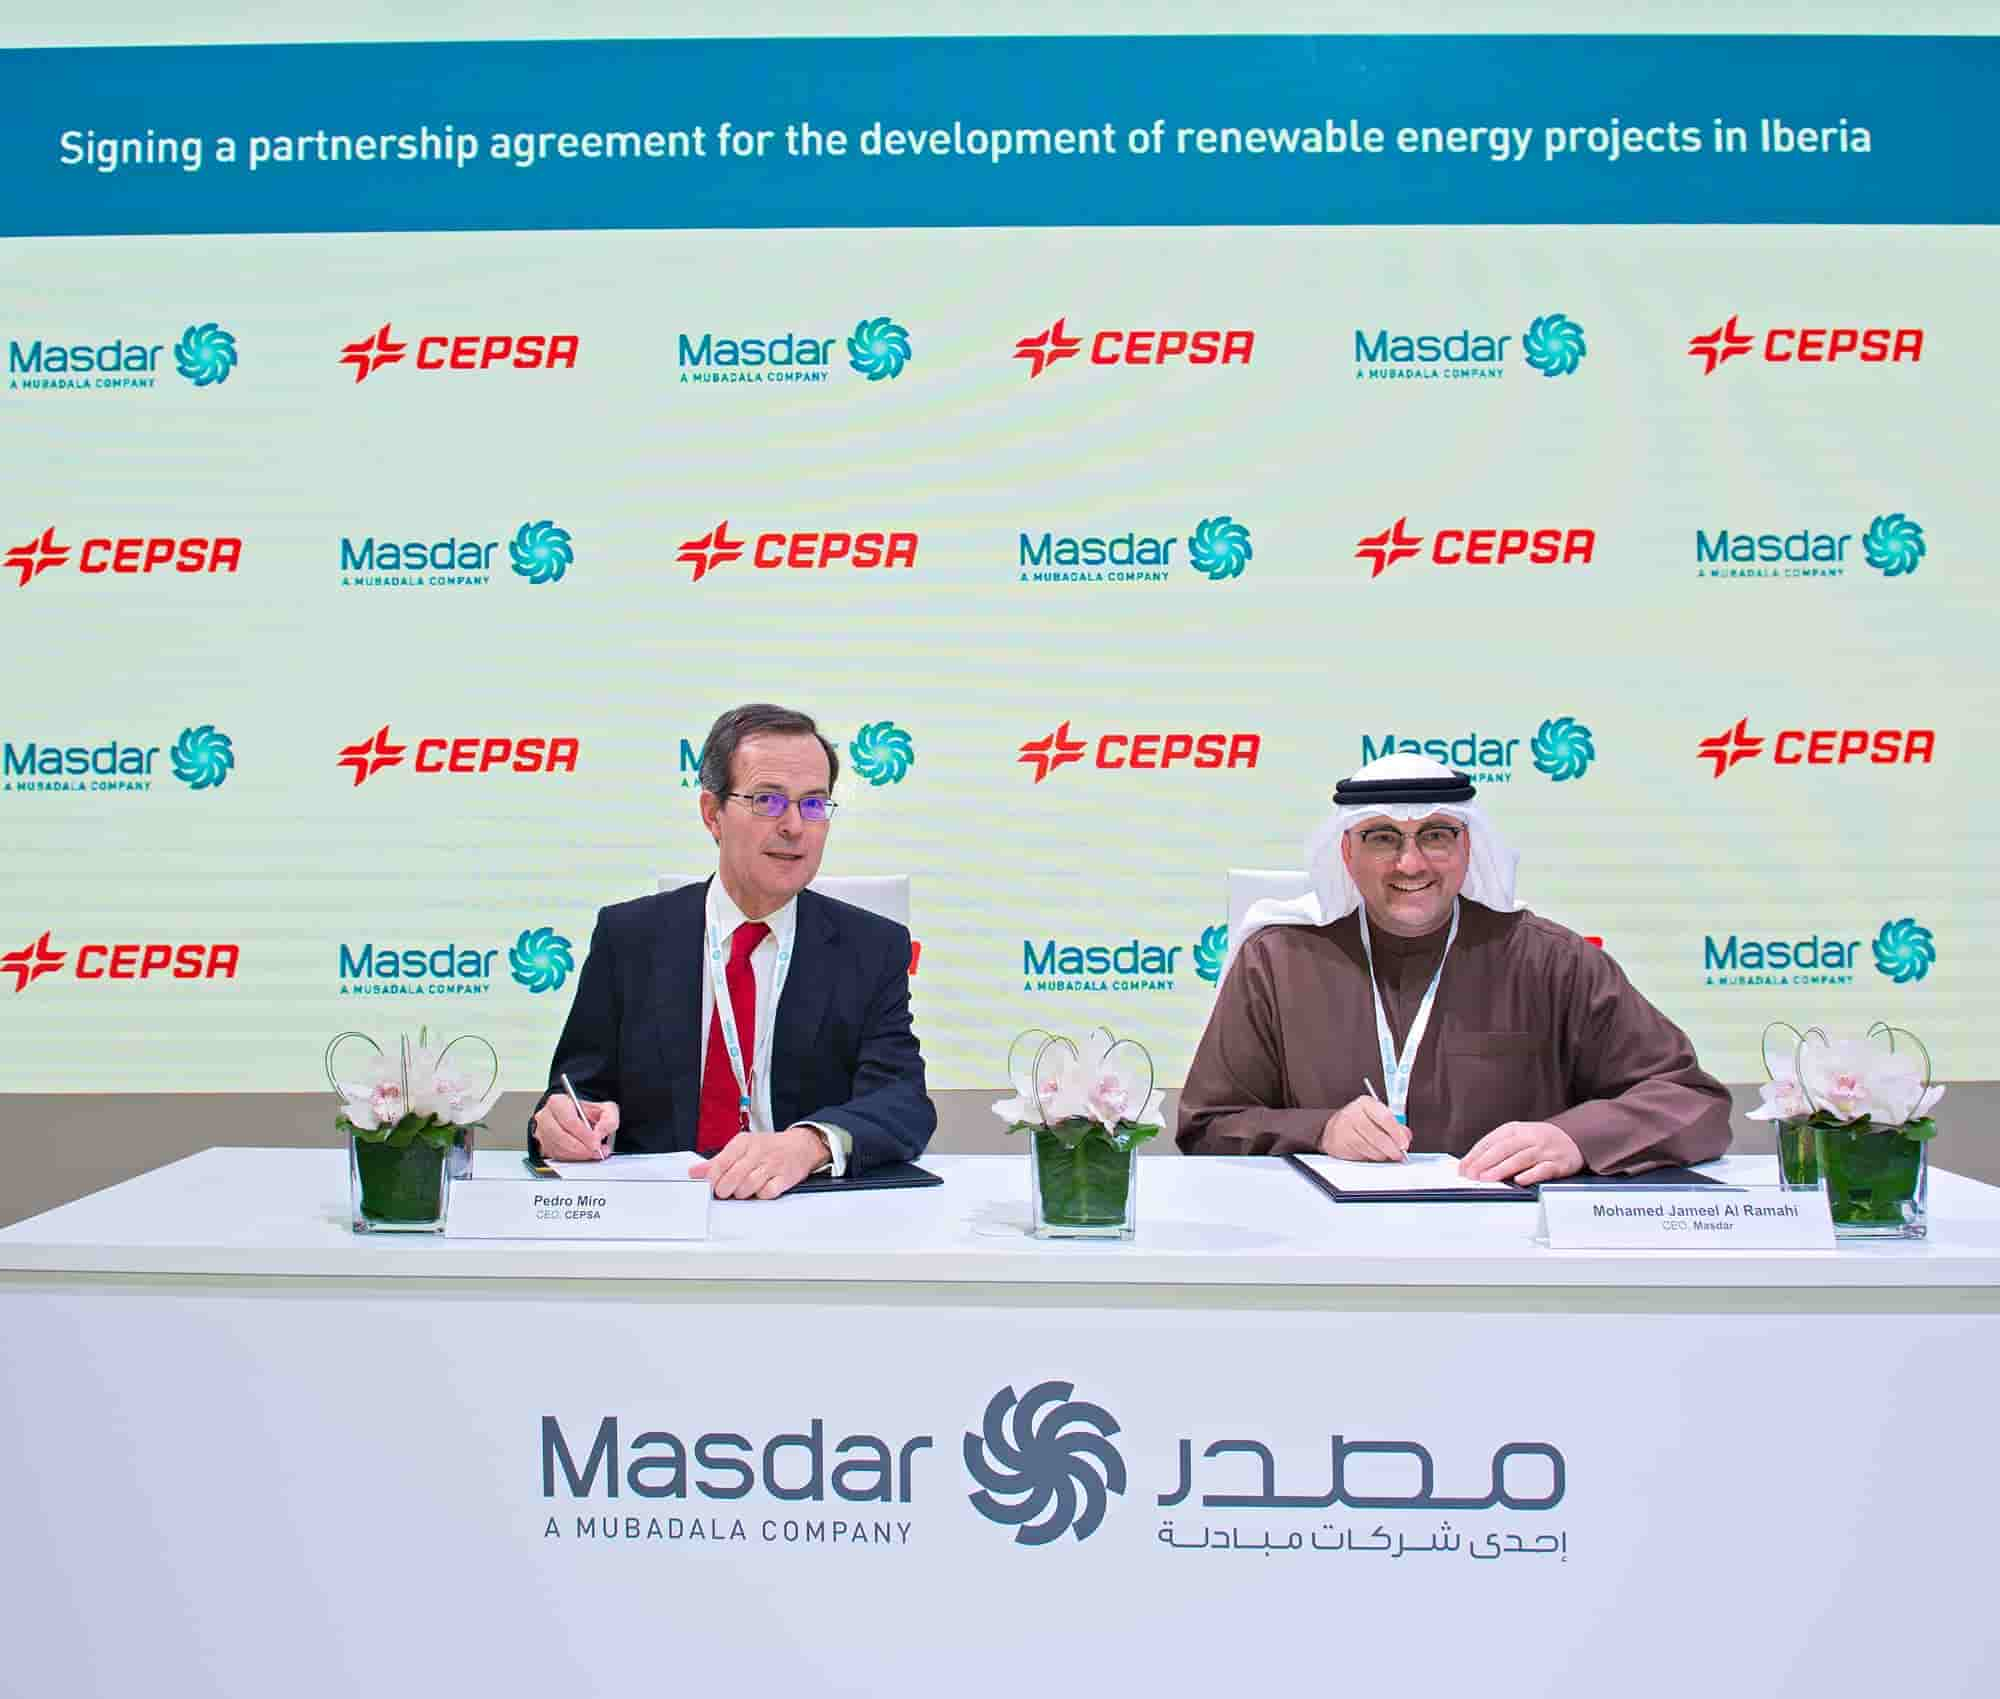 Pedro Miró, CEO of Cepsa, and Mohammed Jameel Al Ramahi, CEO of Masdar, at the signing of the agreement.